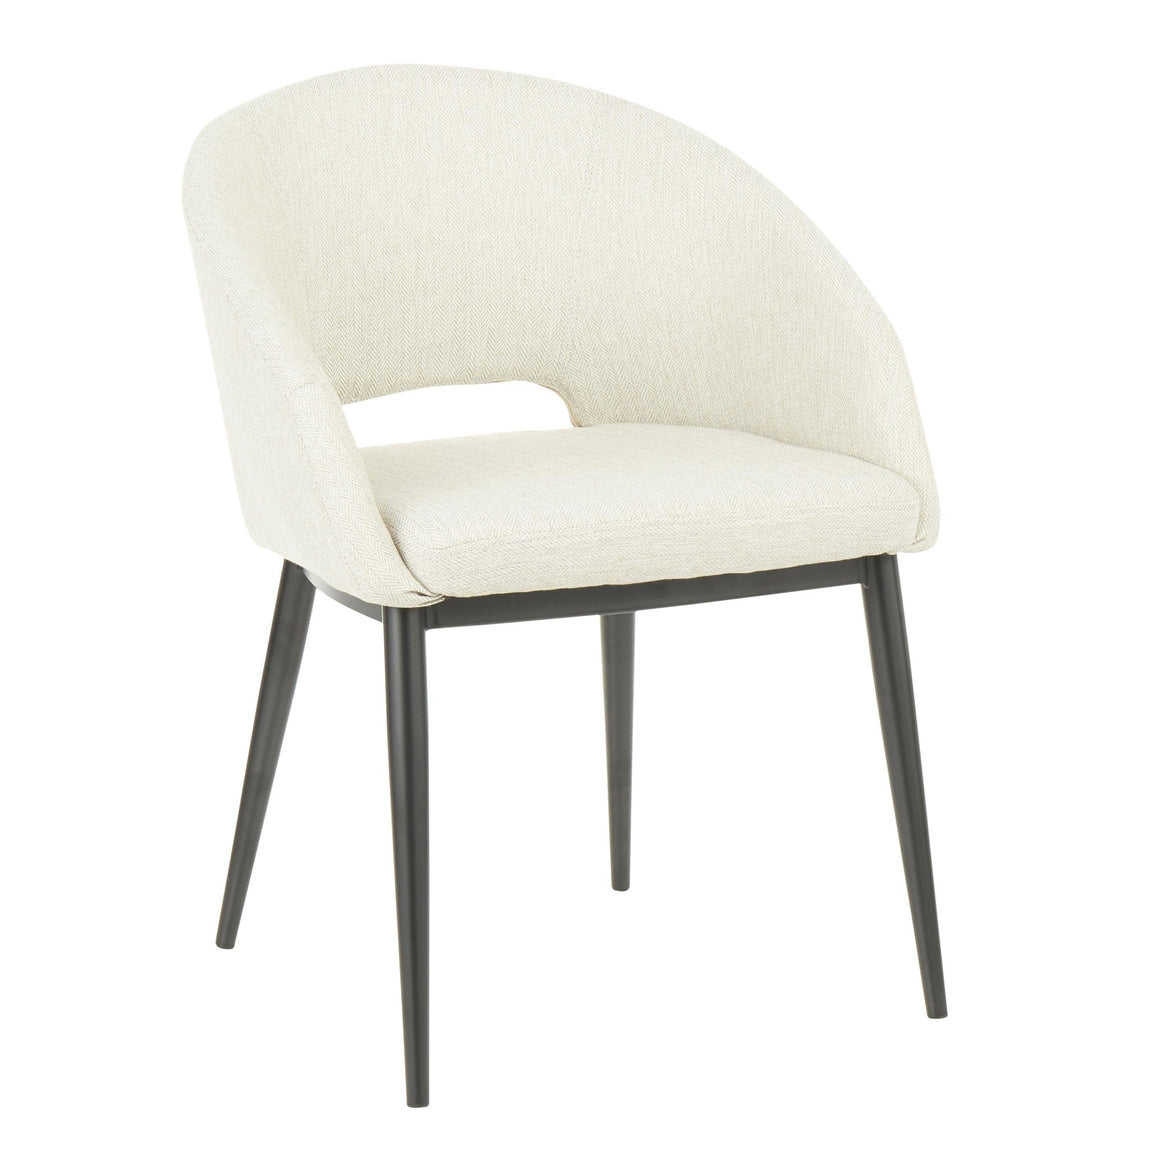 Renee Contemporary Chair in Black Metal Legs and Beige Fabric by LumiSource